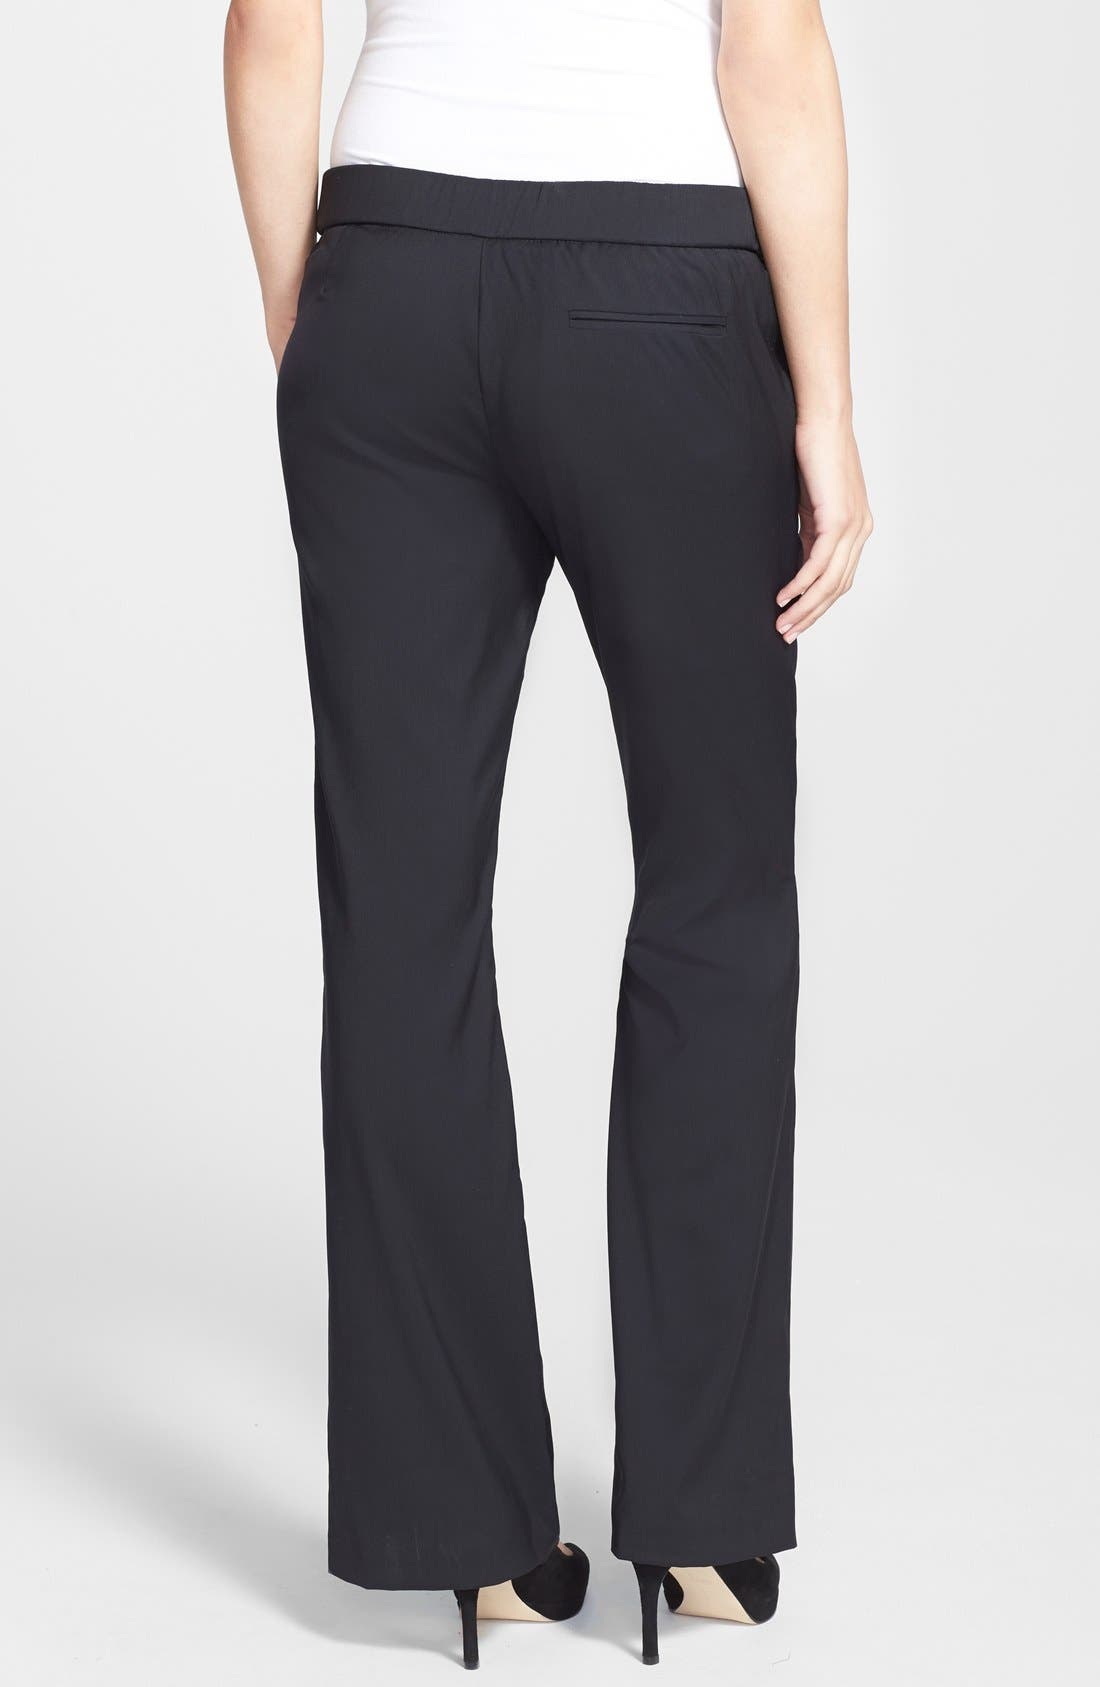 London 'Morgan' Tailored Maternity Pants,                             Alternate thumbnail 4, color,                             001